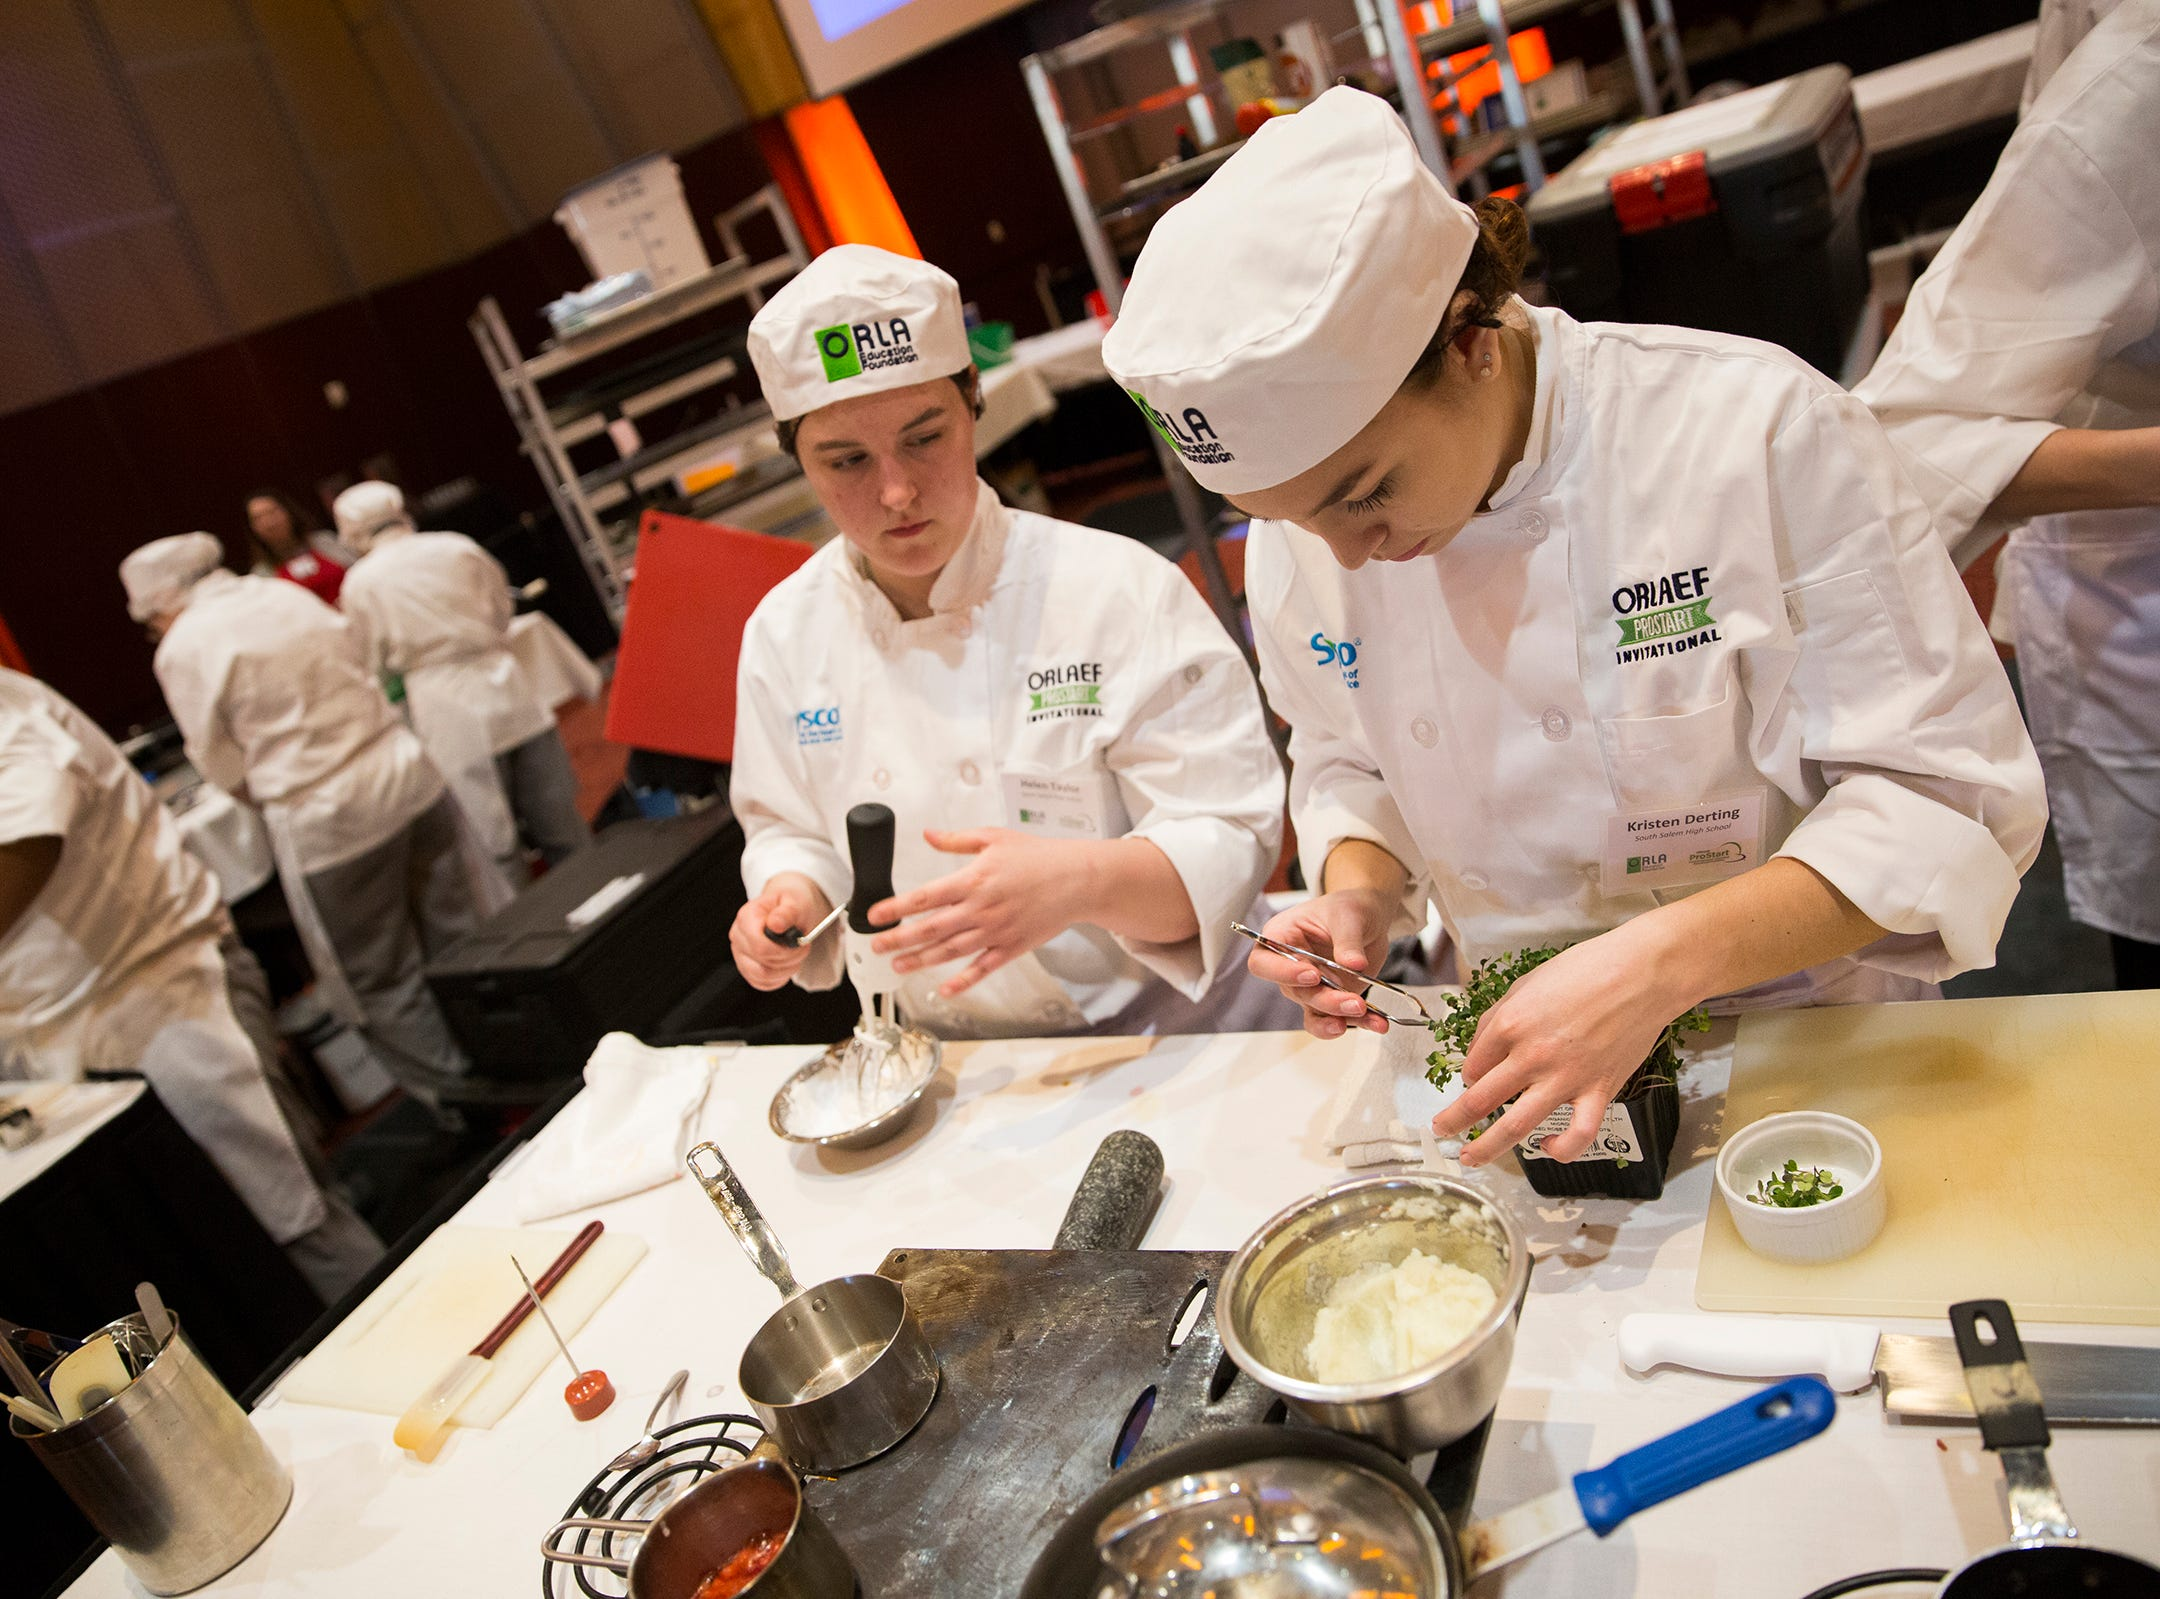 South Salem's Kristen Derting prepares herbs during the ORLAEF's ProStart Invitational, a statewide high school culinary competition, at the Salem Convention Center on March 18, 2019.